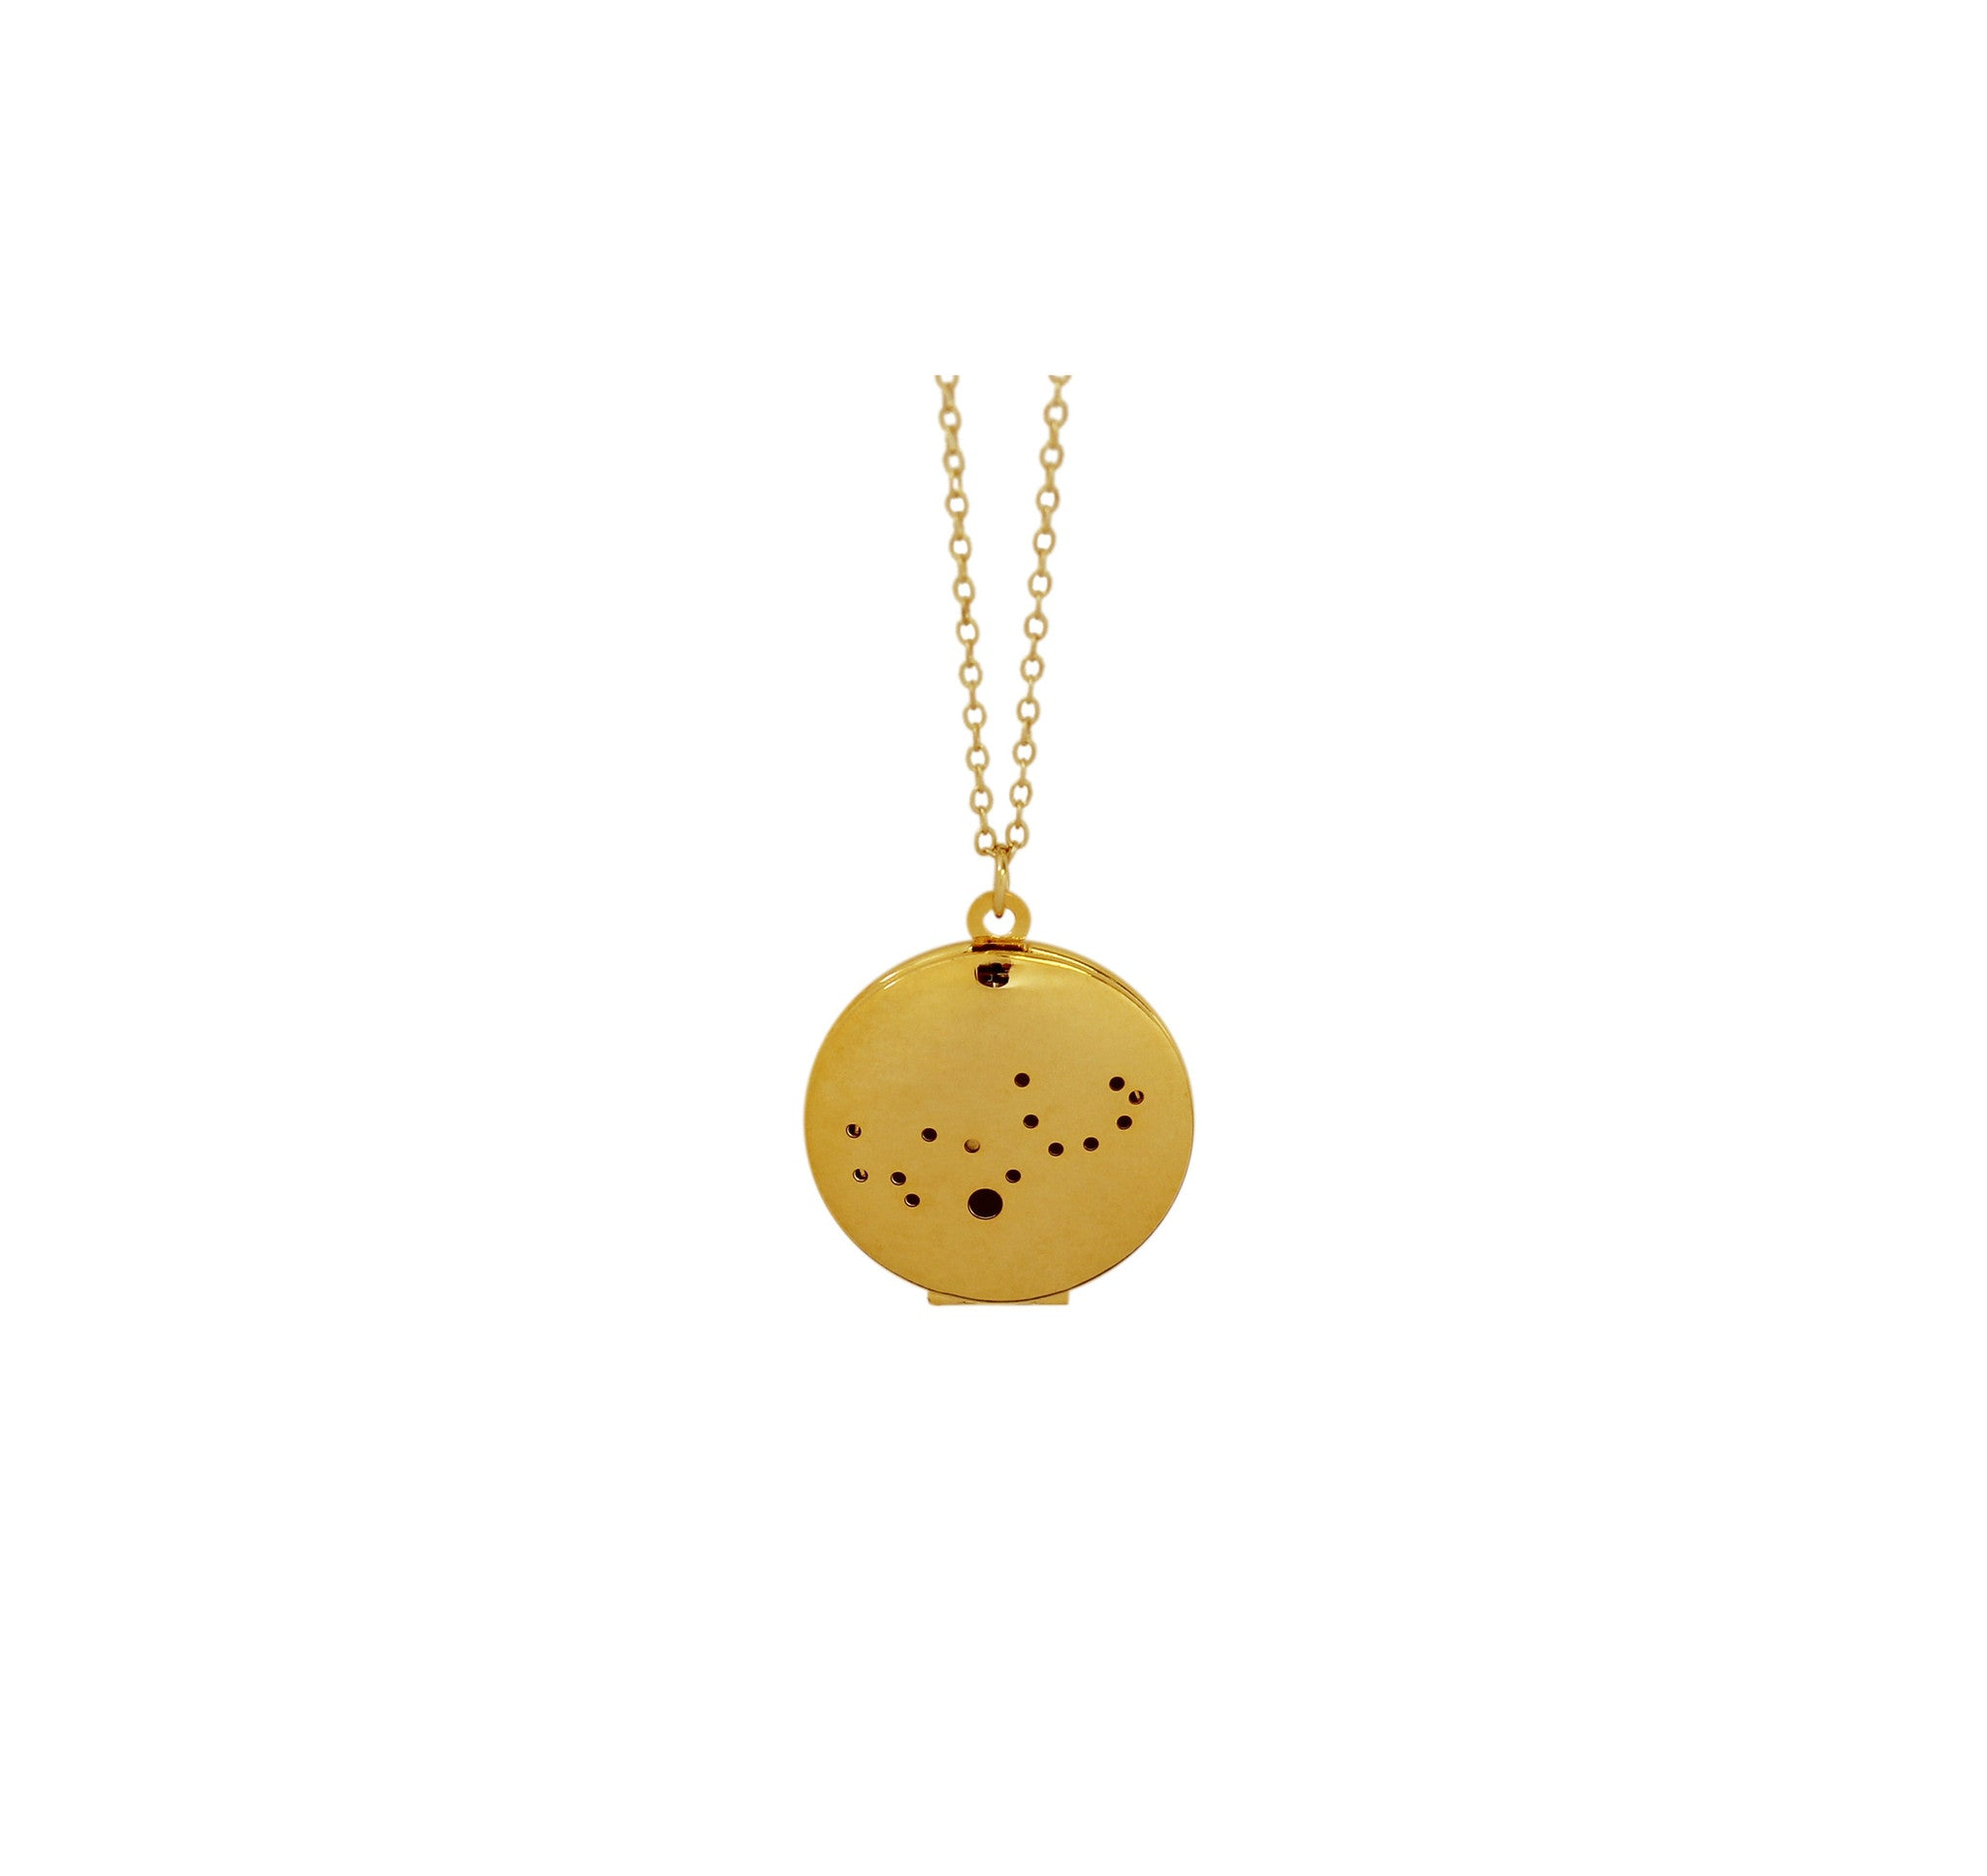 products h packaging virgo plato gold necklace pendant gift